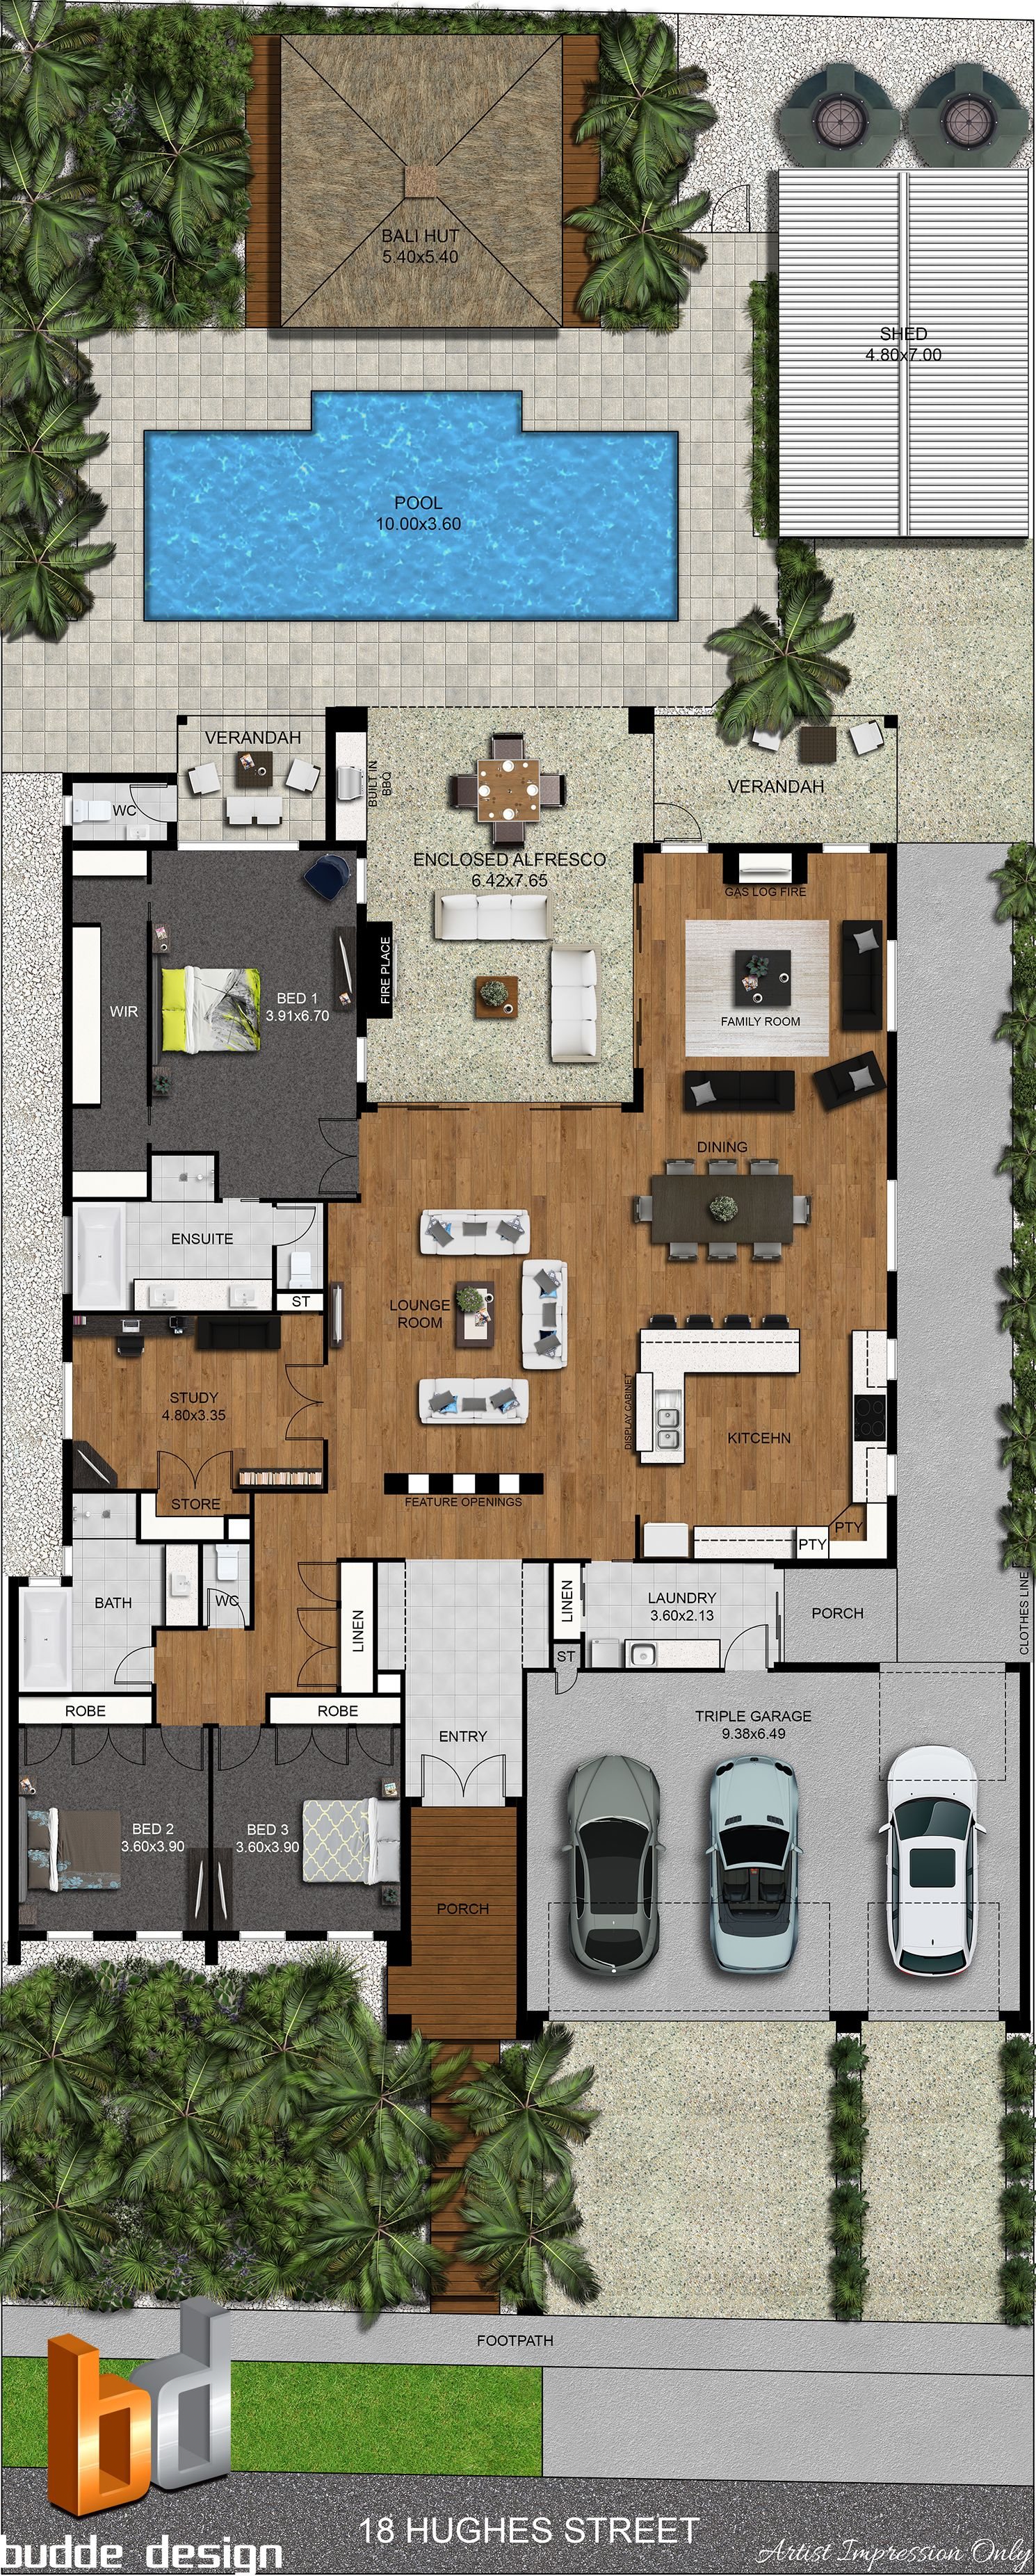 2d colour floor plan and 2d colour site plan image used for Plan rendering ideas